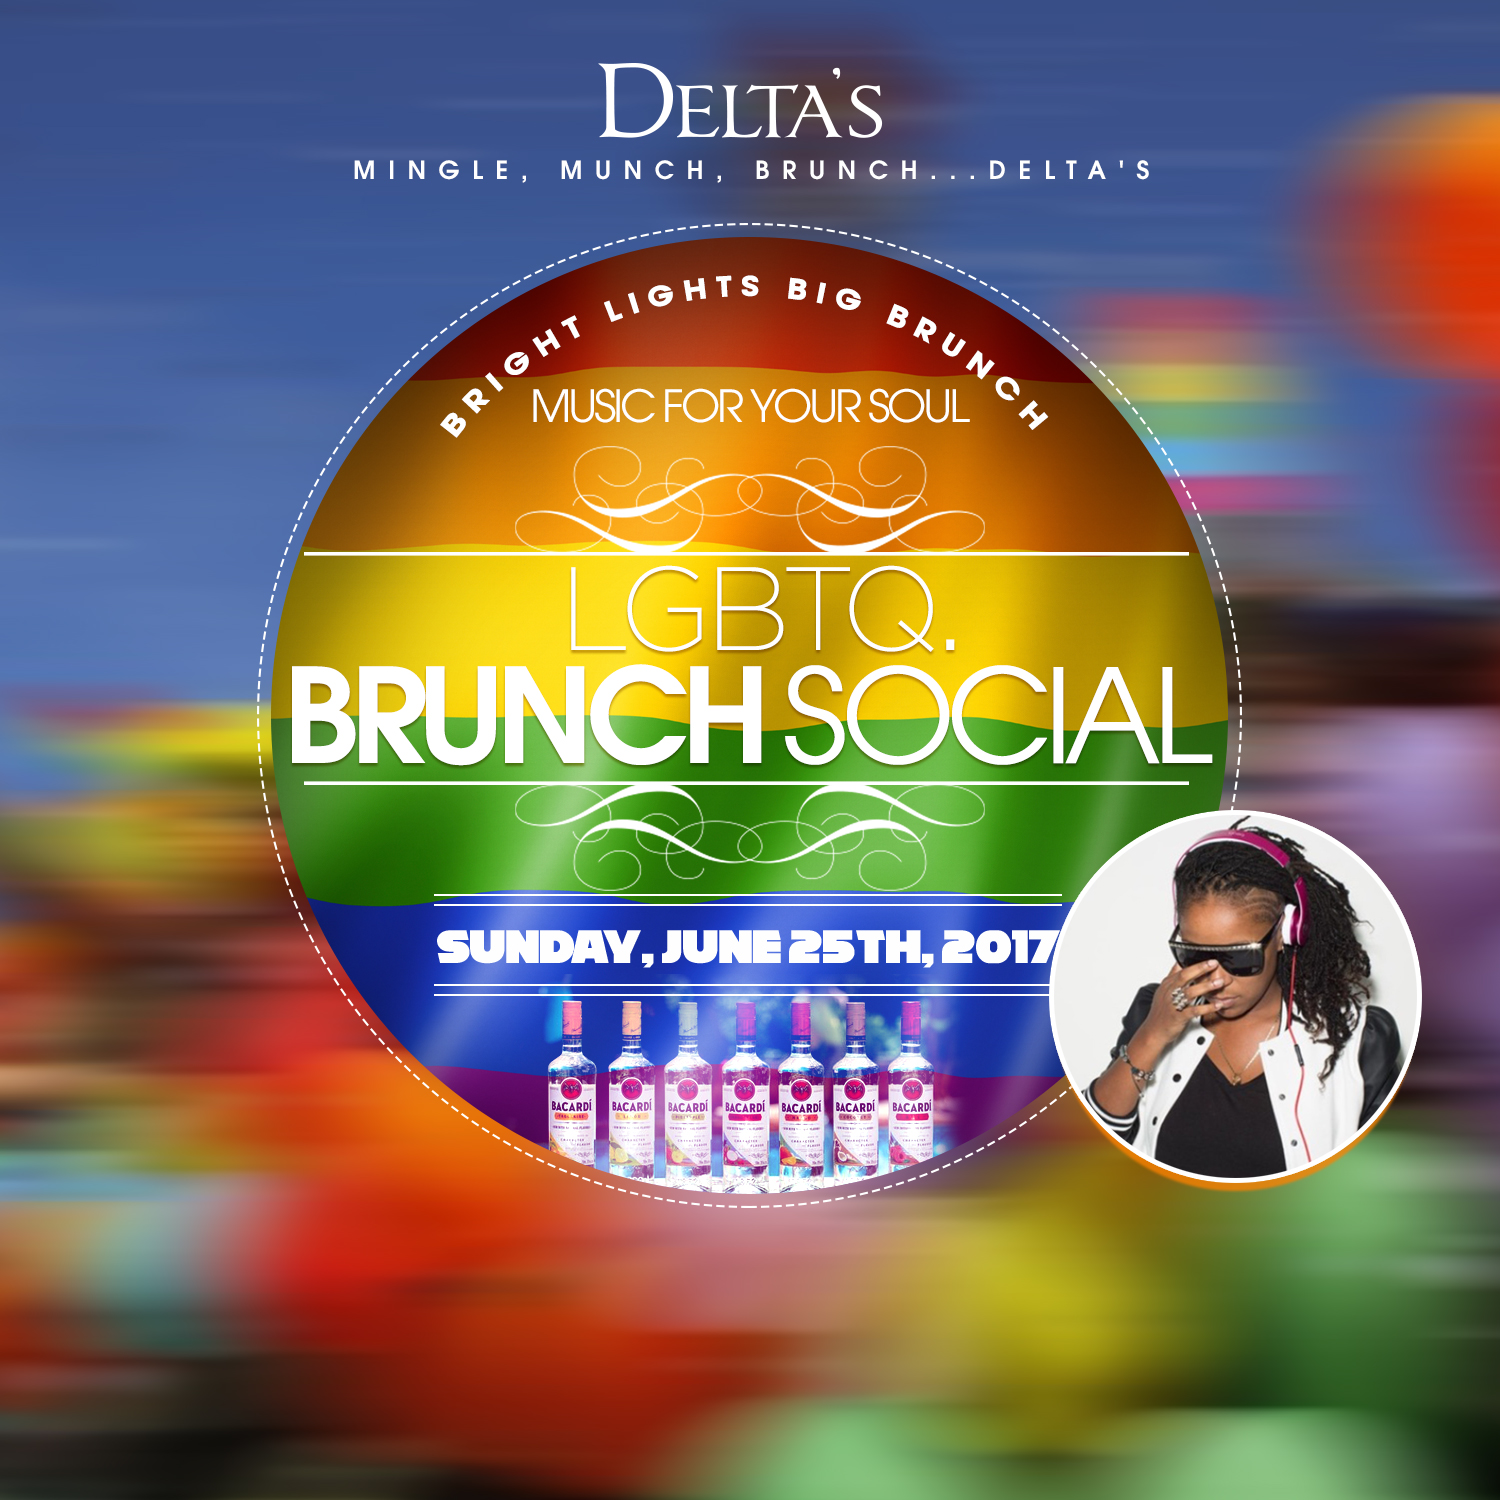 LGBTQ Brunch Social